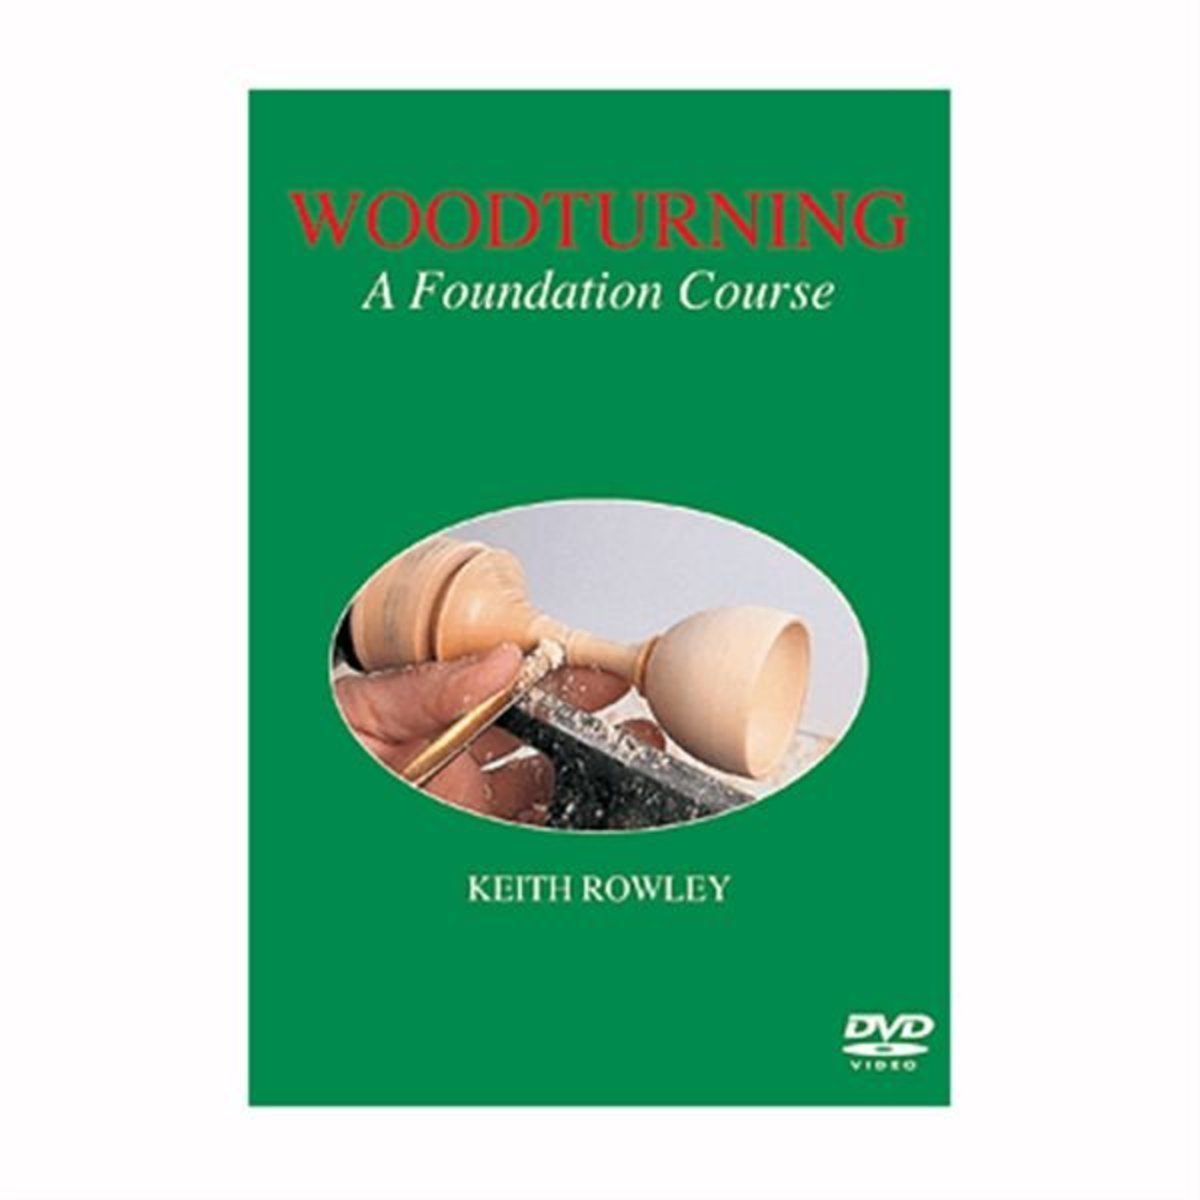 Woodturning A Foundation Course By Keith Rowley